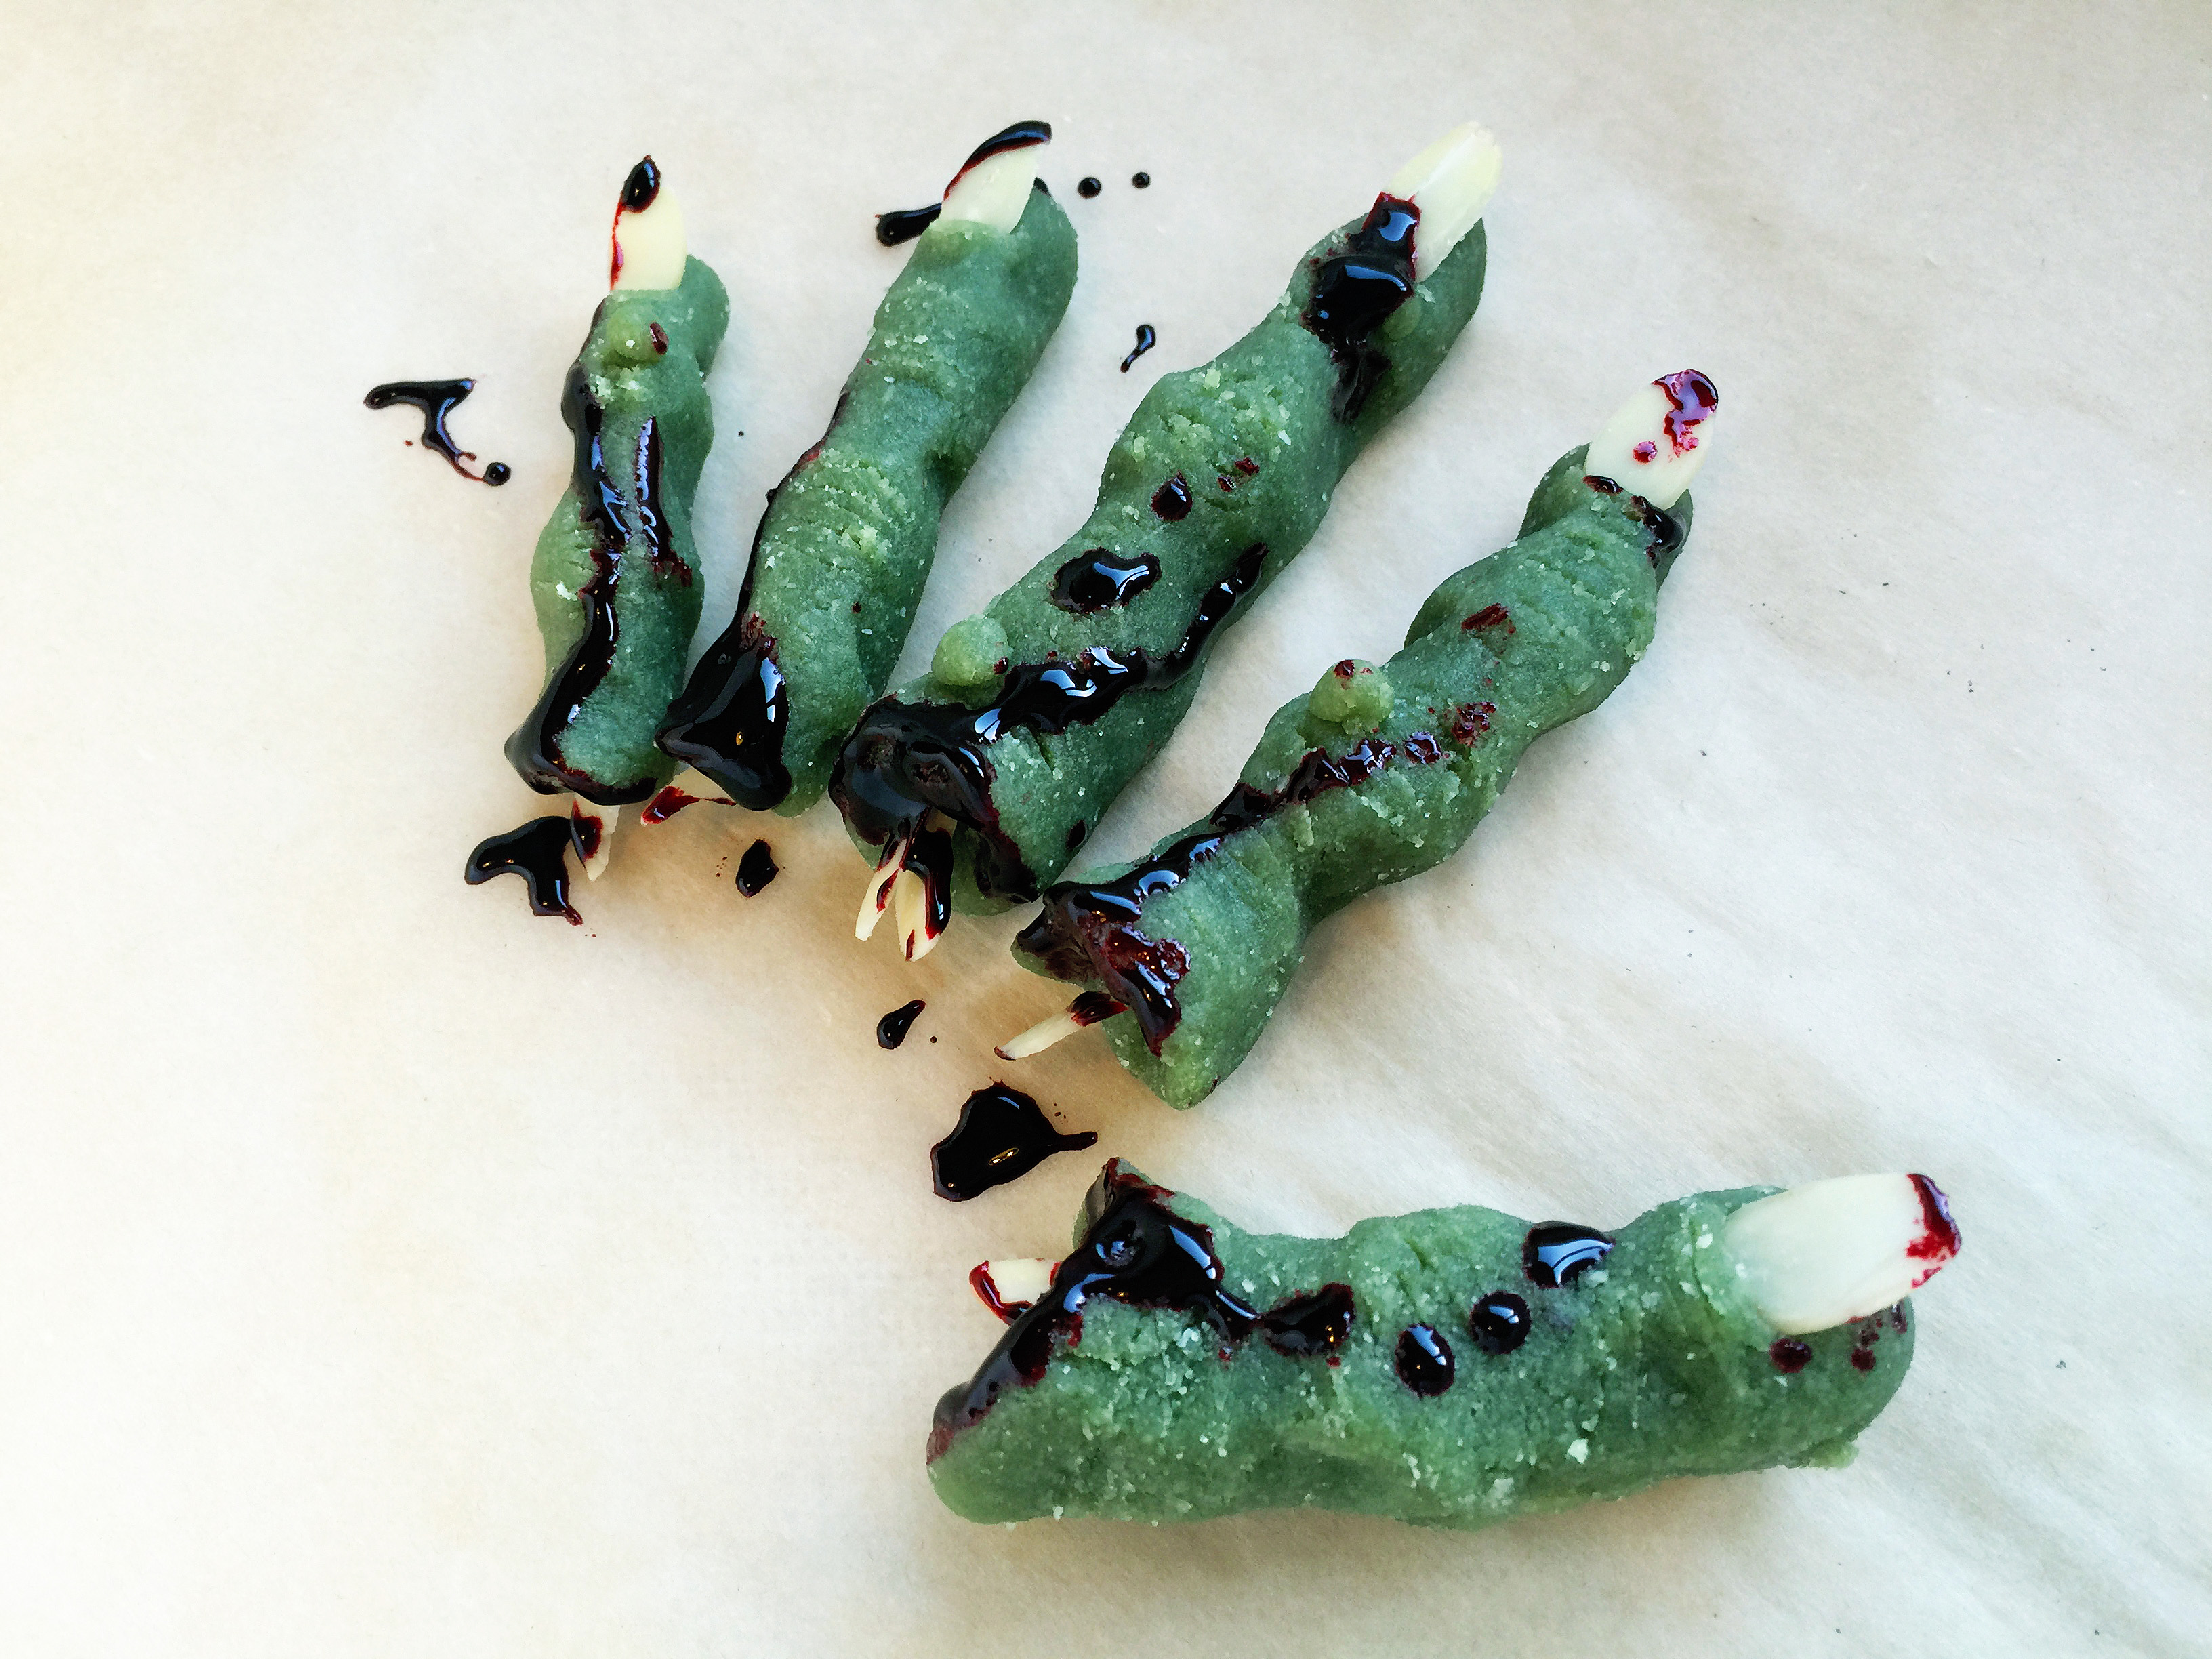 ghoulishly-delicious-severed-zombie-fingers-6